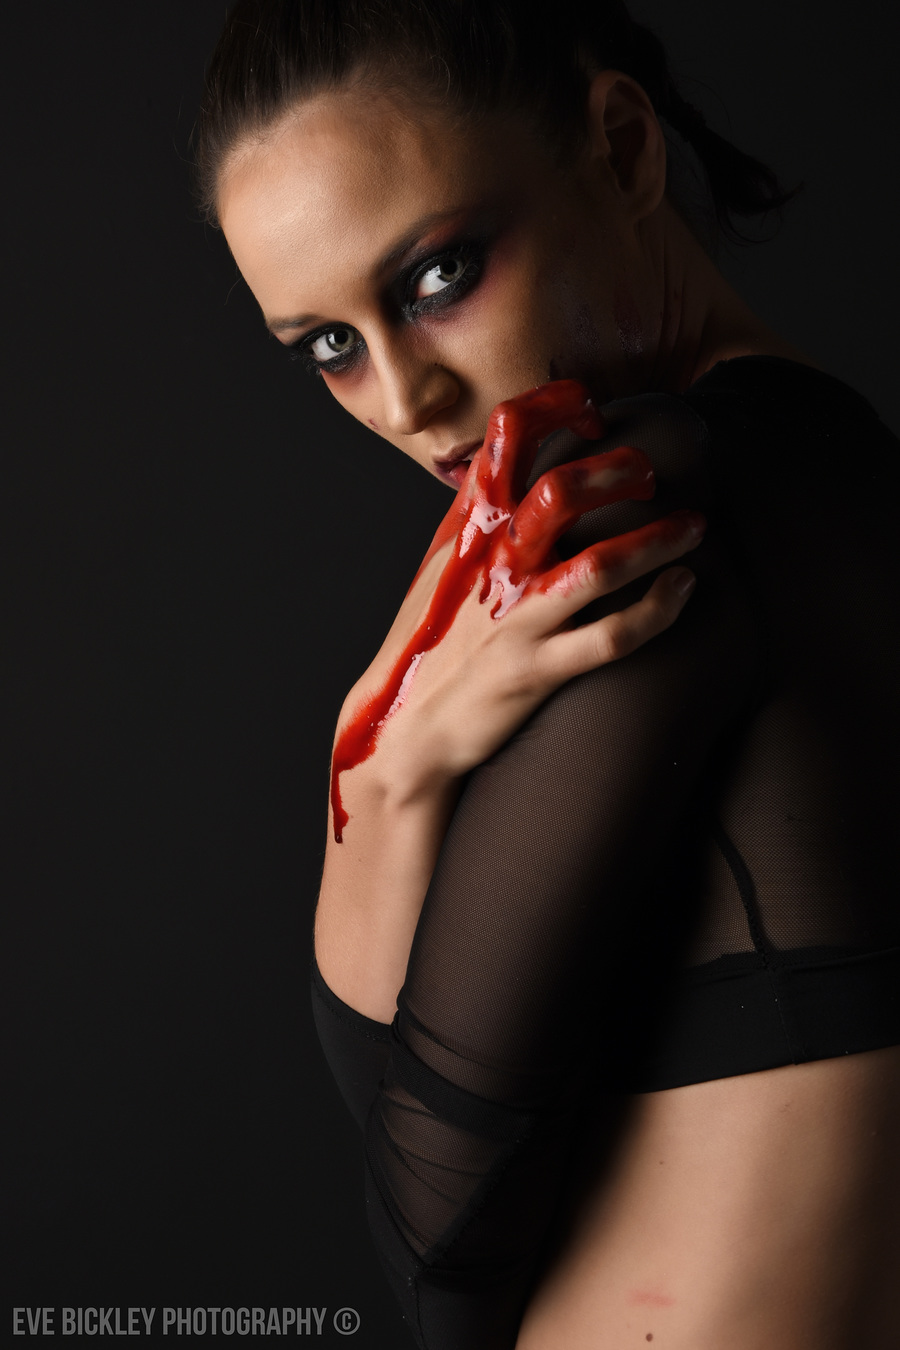 Blood Thirsty / Photography by On Film Photography Studio, Post processing by On Film Photography Studio, Taken at On Film Photography Studio / Uploaded 22nd September 2017 @ 08:55 AM